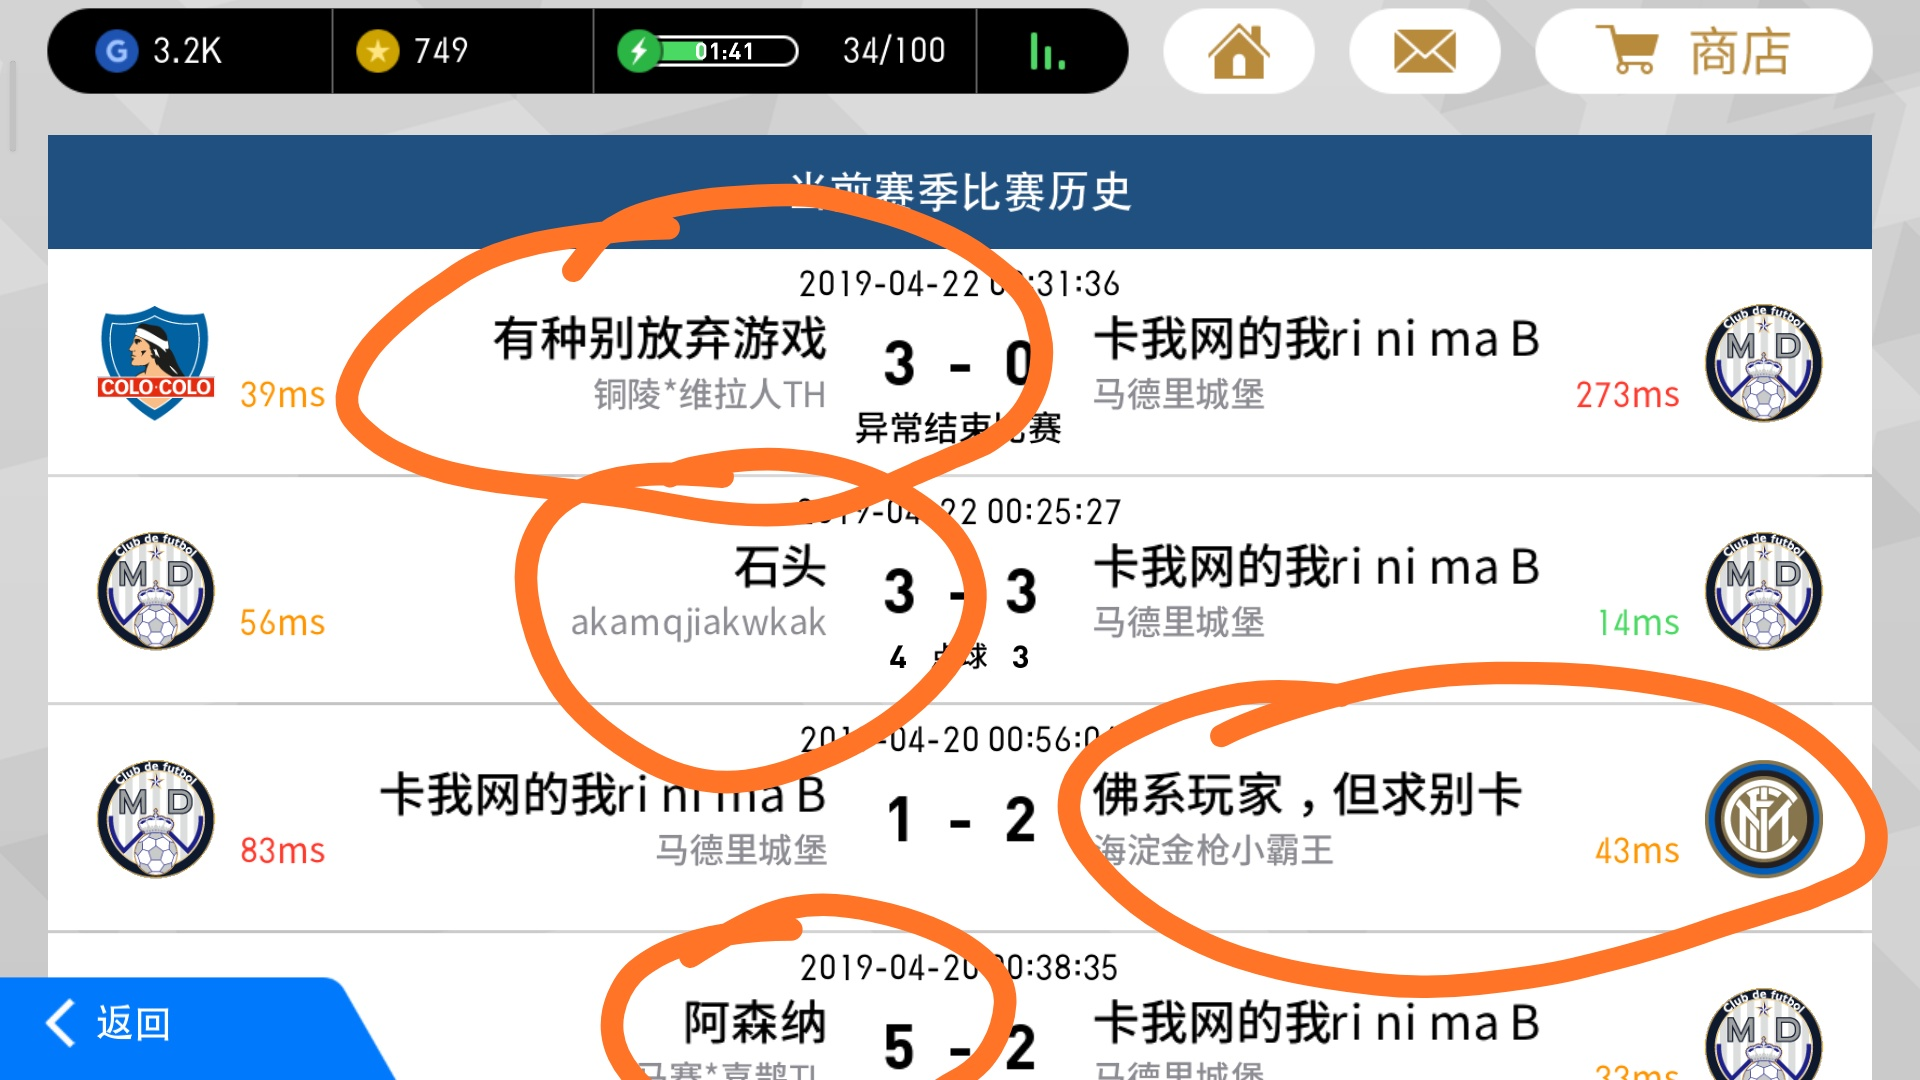 Screenshot_2019-04-22-00-38-20-161_com.netease.pes.png